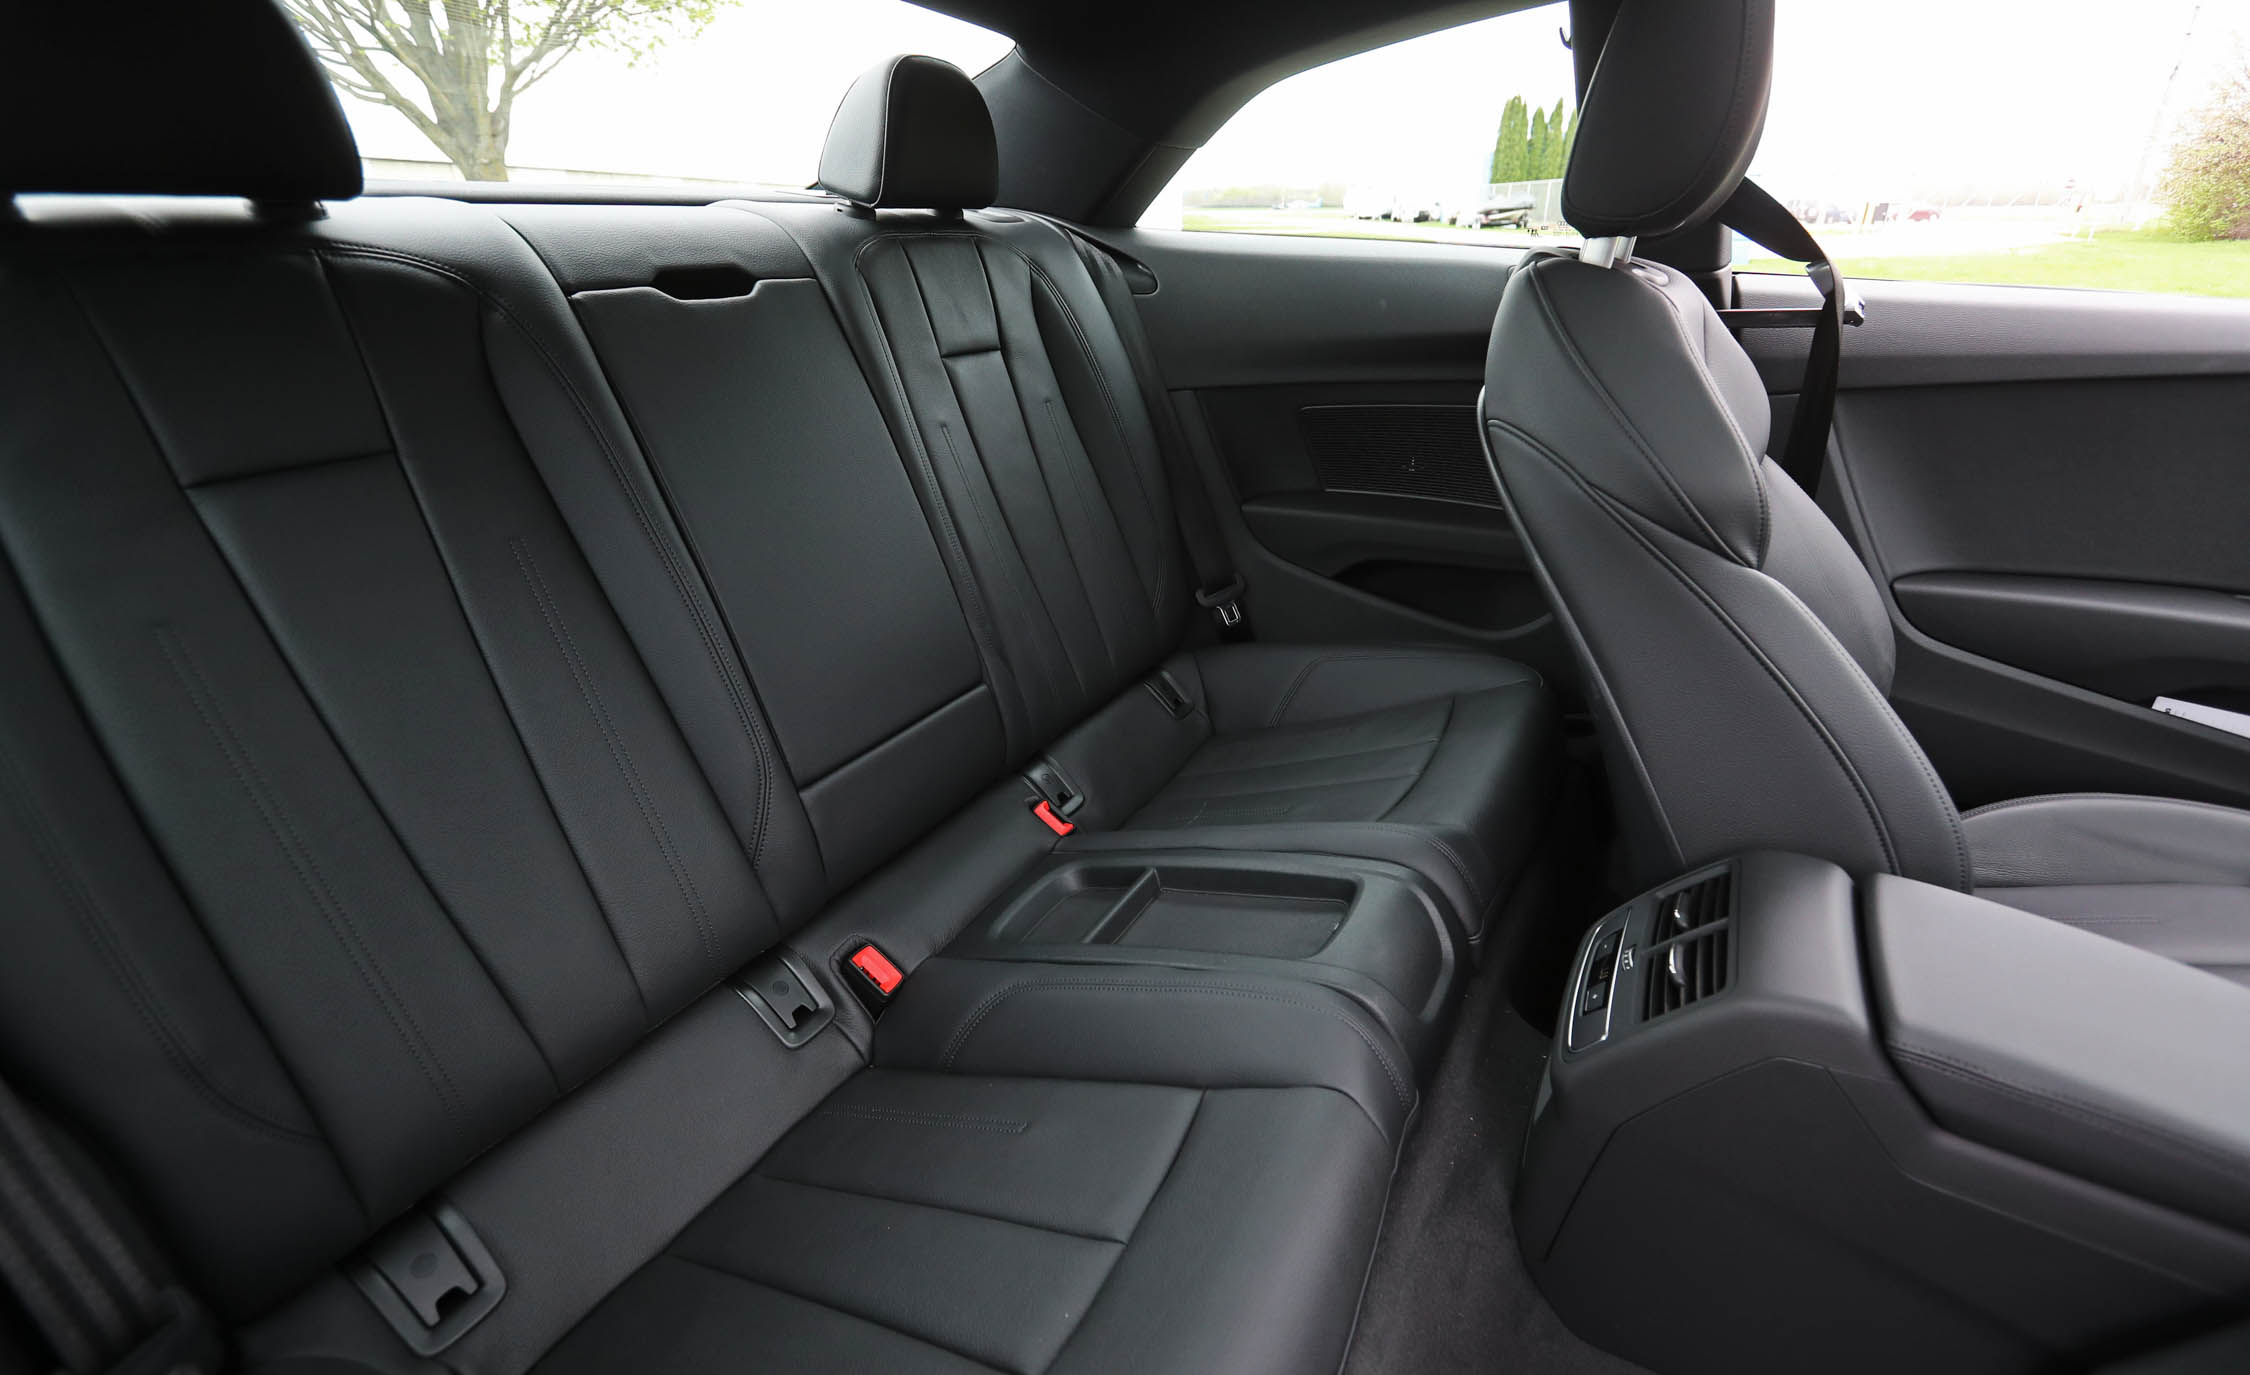 2018 Audi A5 Coupe Interior Seats Rear (Photo 20 of 50)